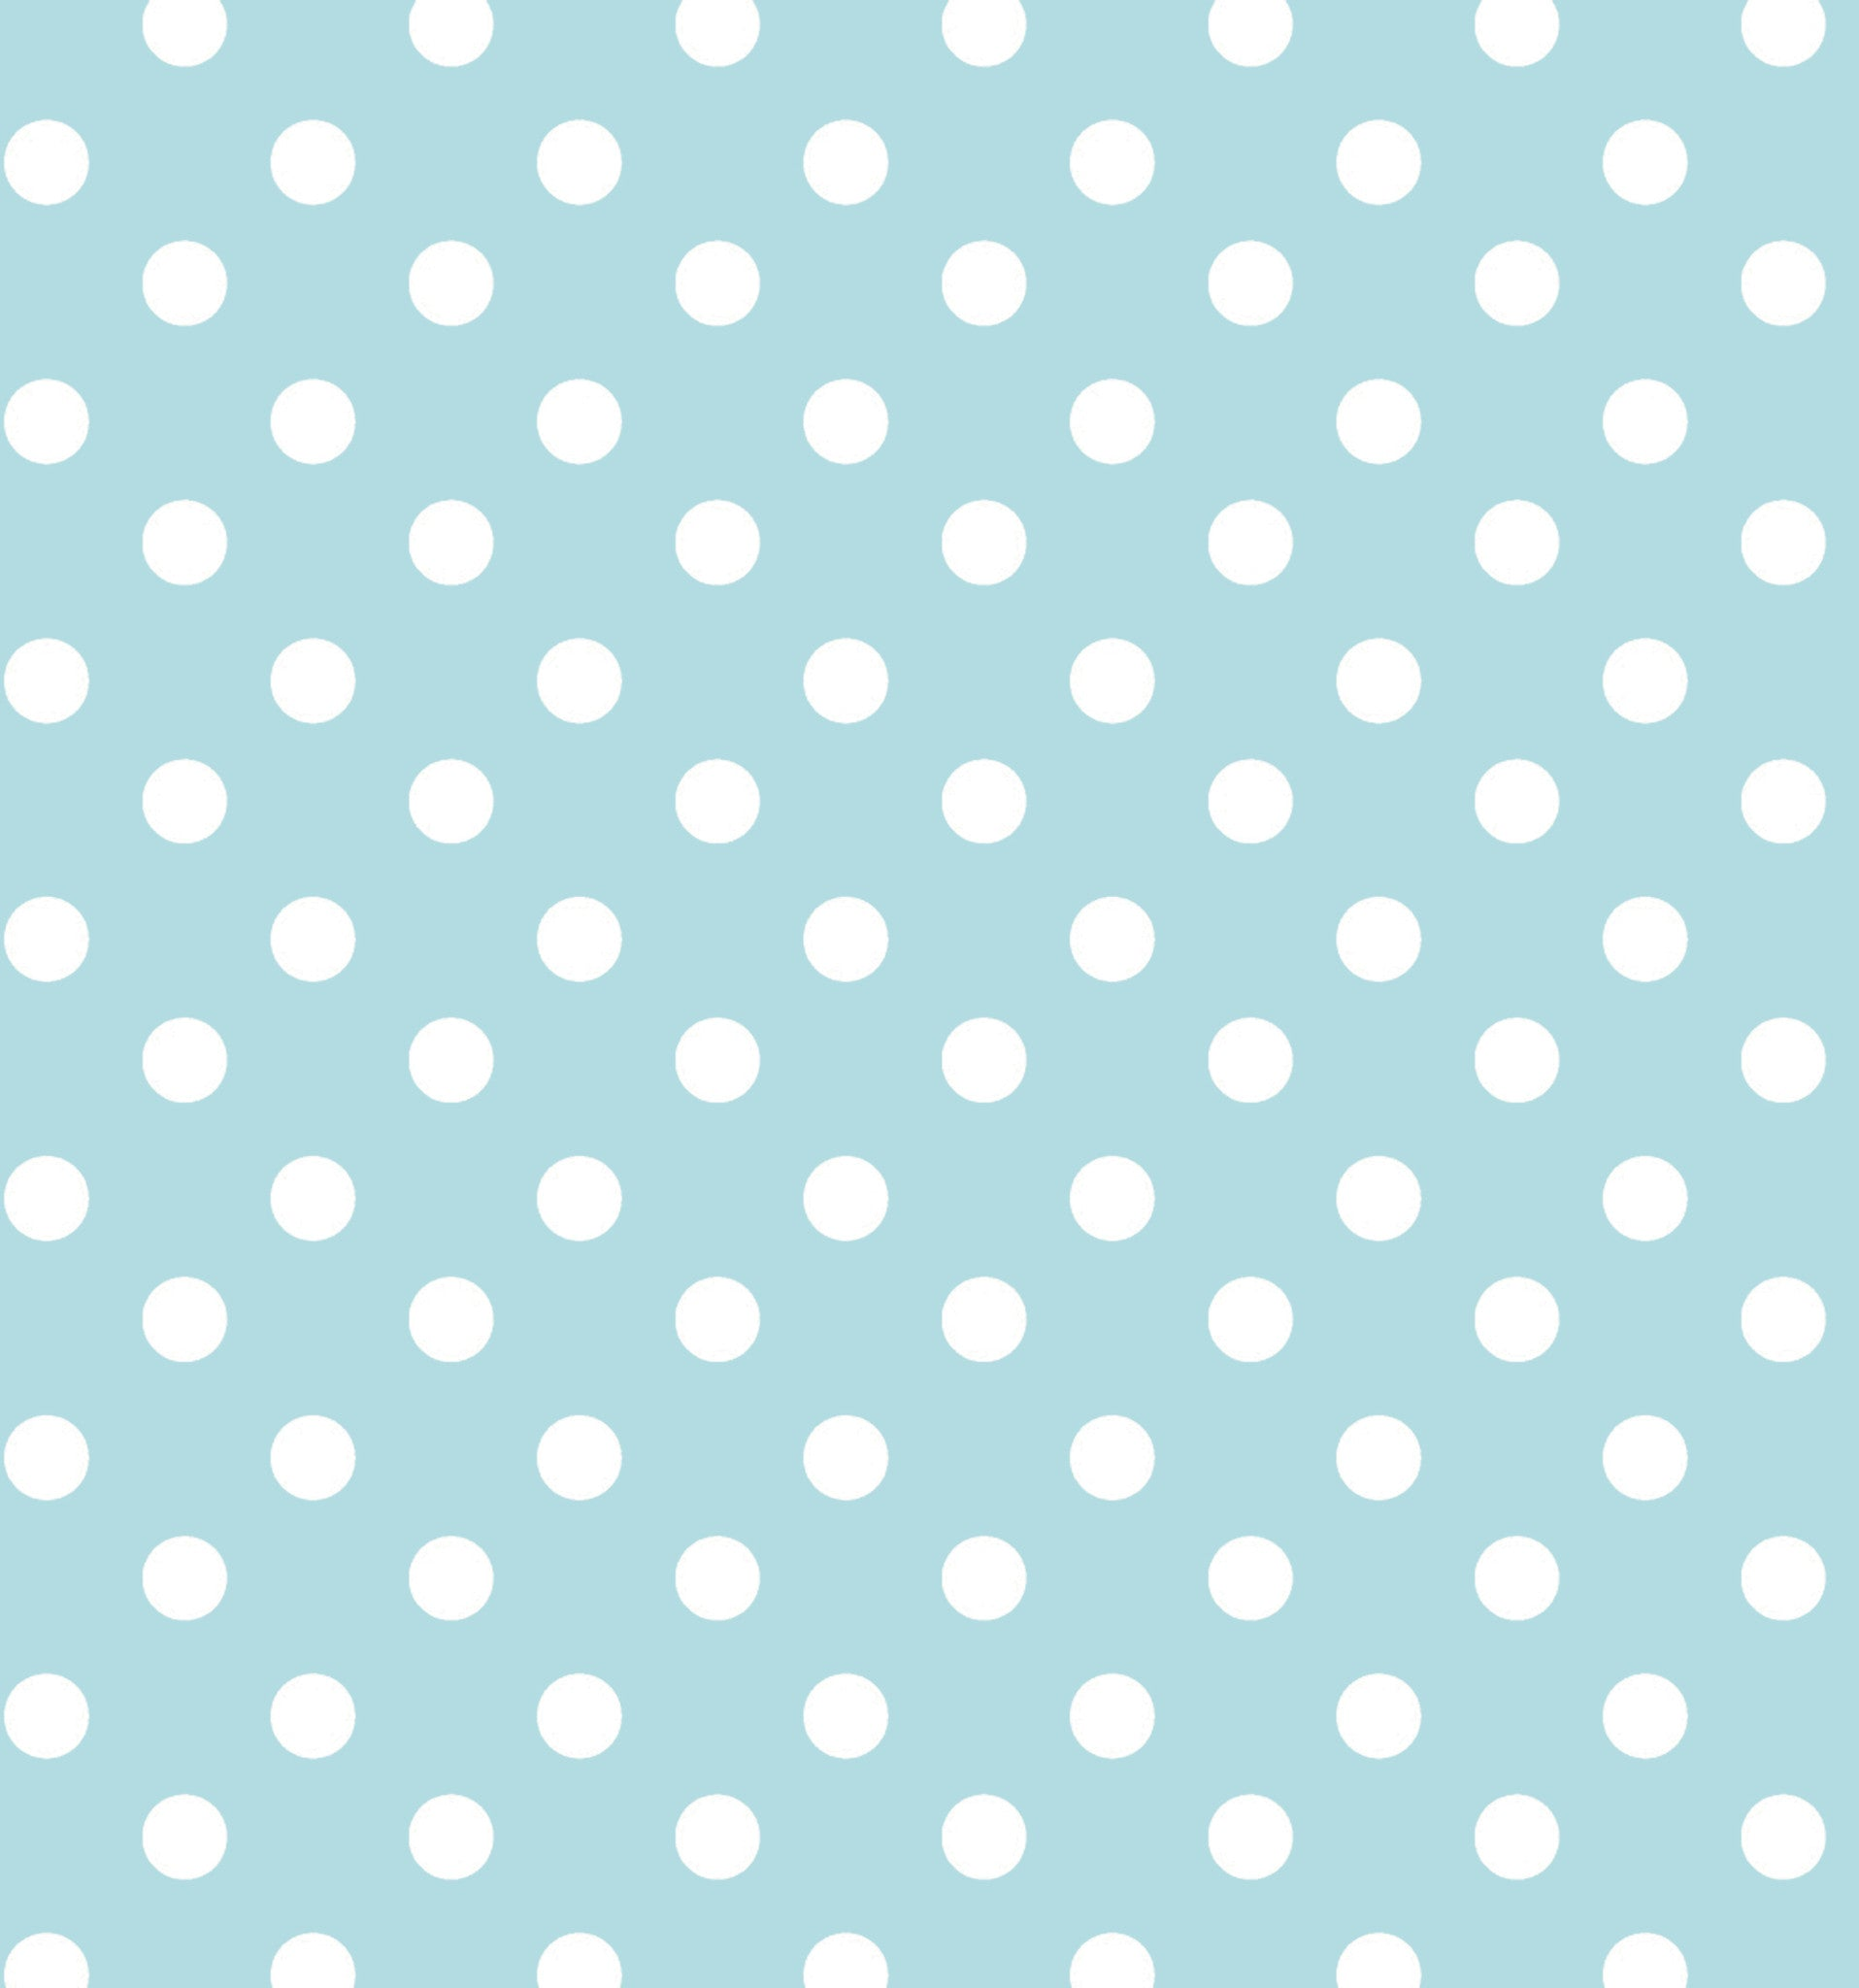 Cotton Flannel Print Polkadot Aqua